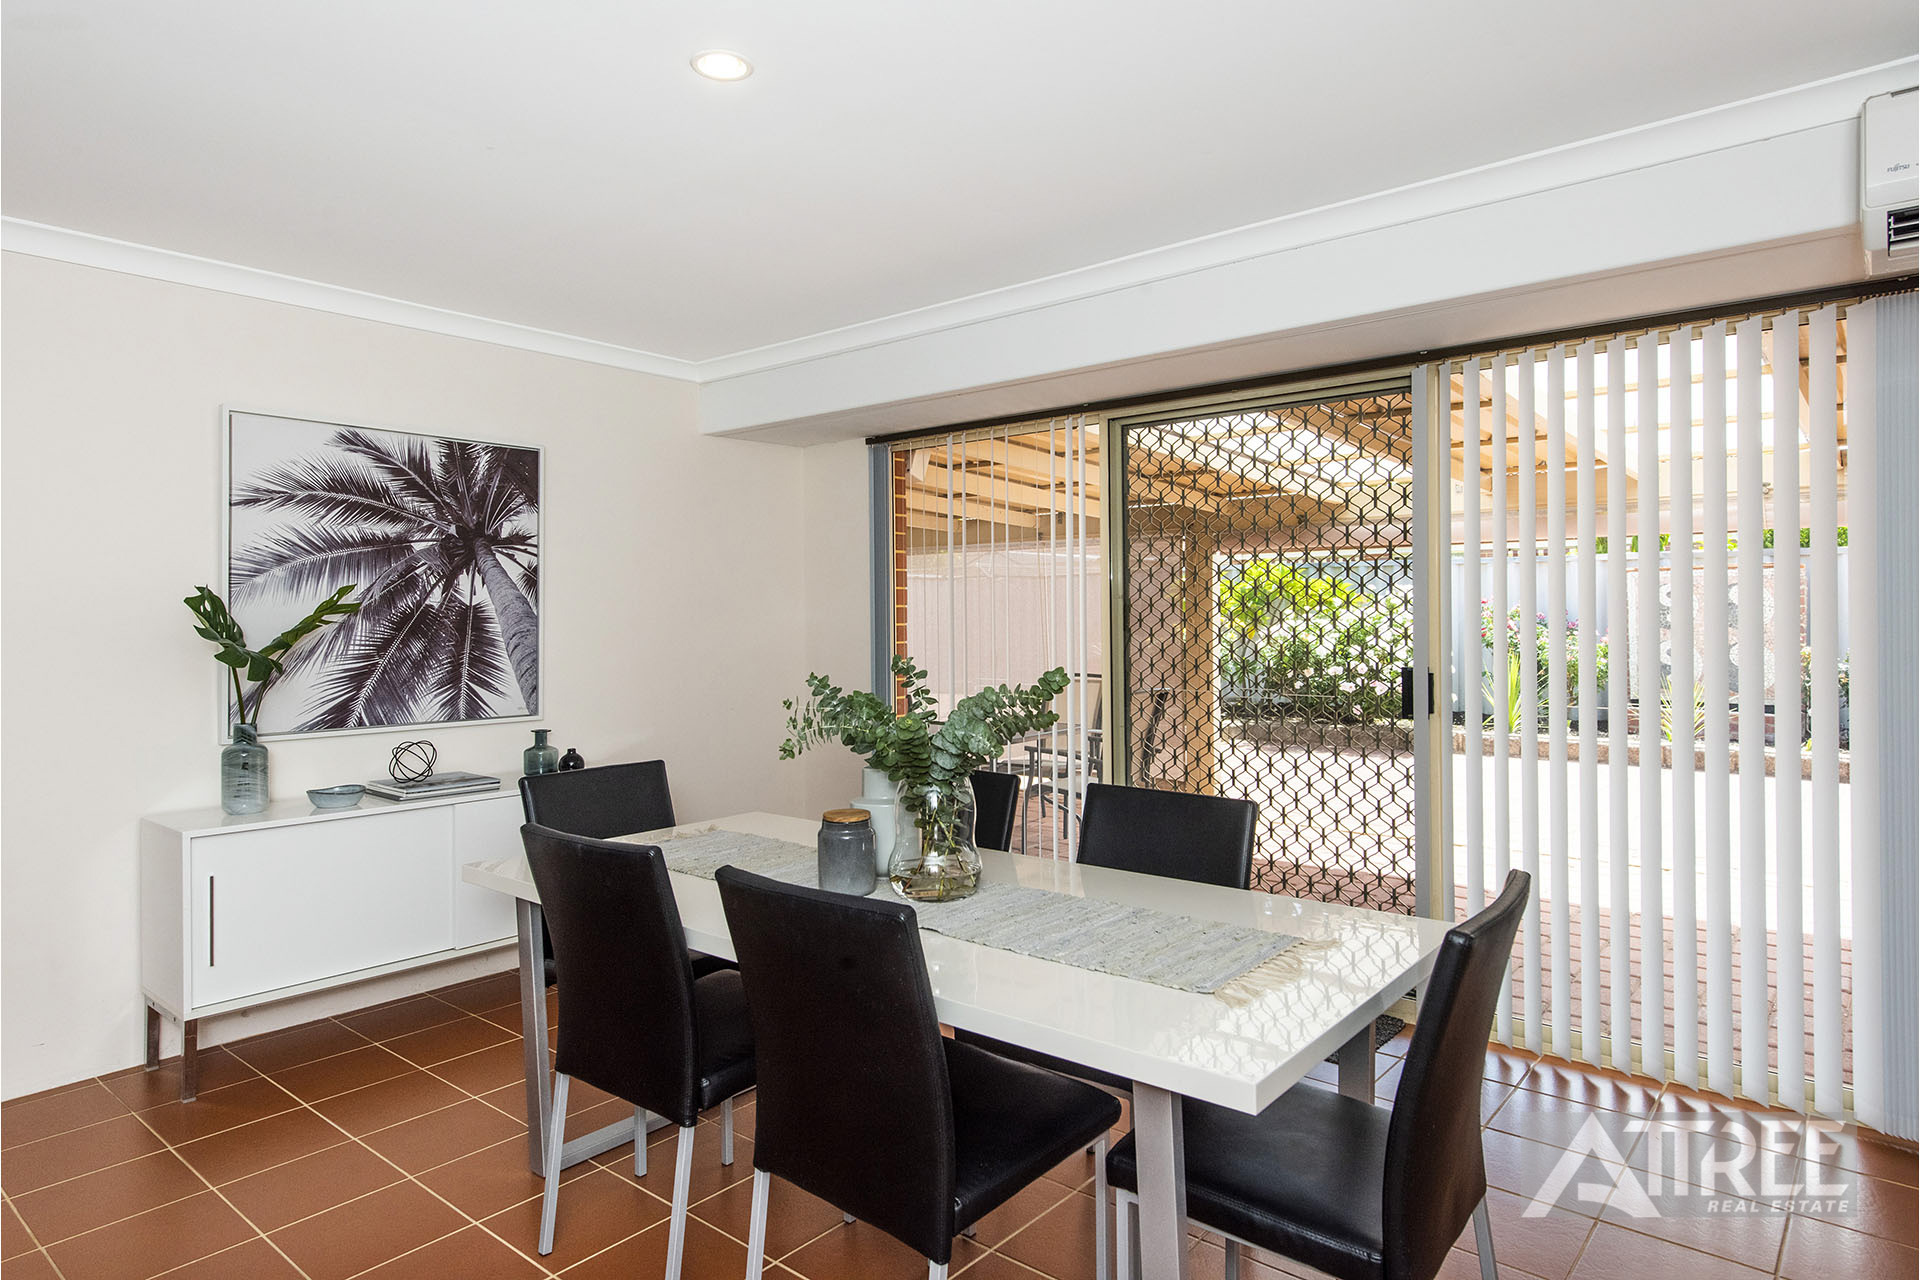 Property for sale in THORNLIE, 5 Myrtle Court : Attree Real Estate